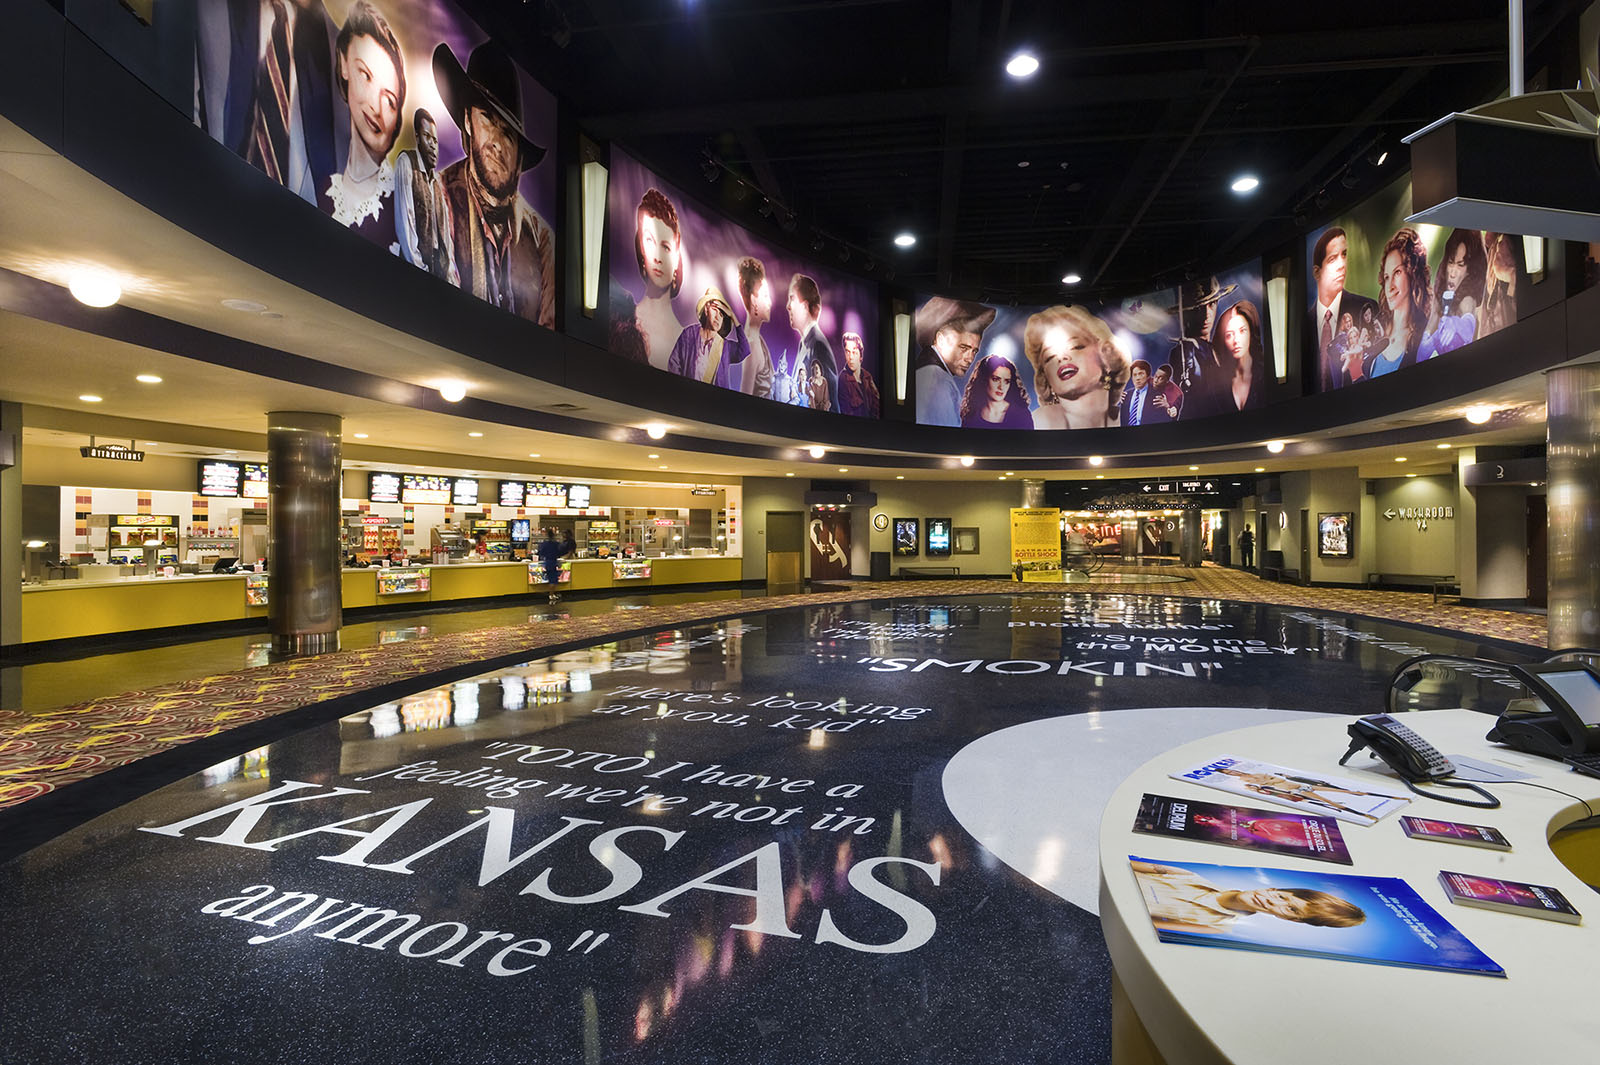 Main concourse at AMC Theatres, Yonge Dundas Square, Toronto, Ontario